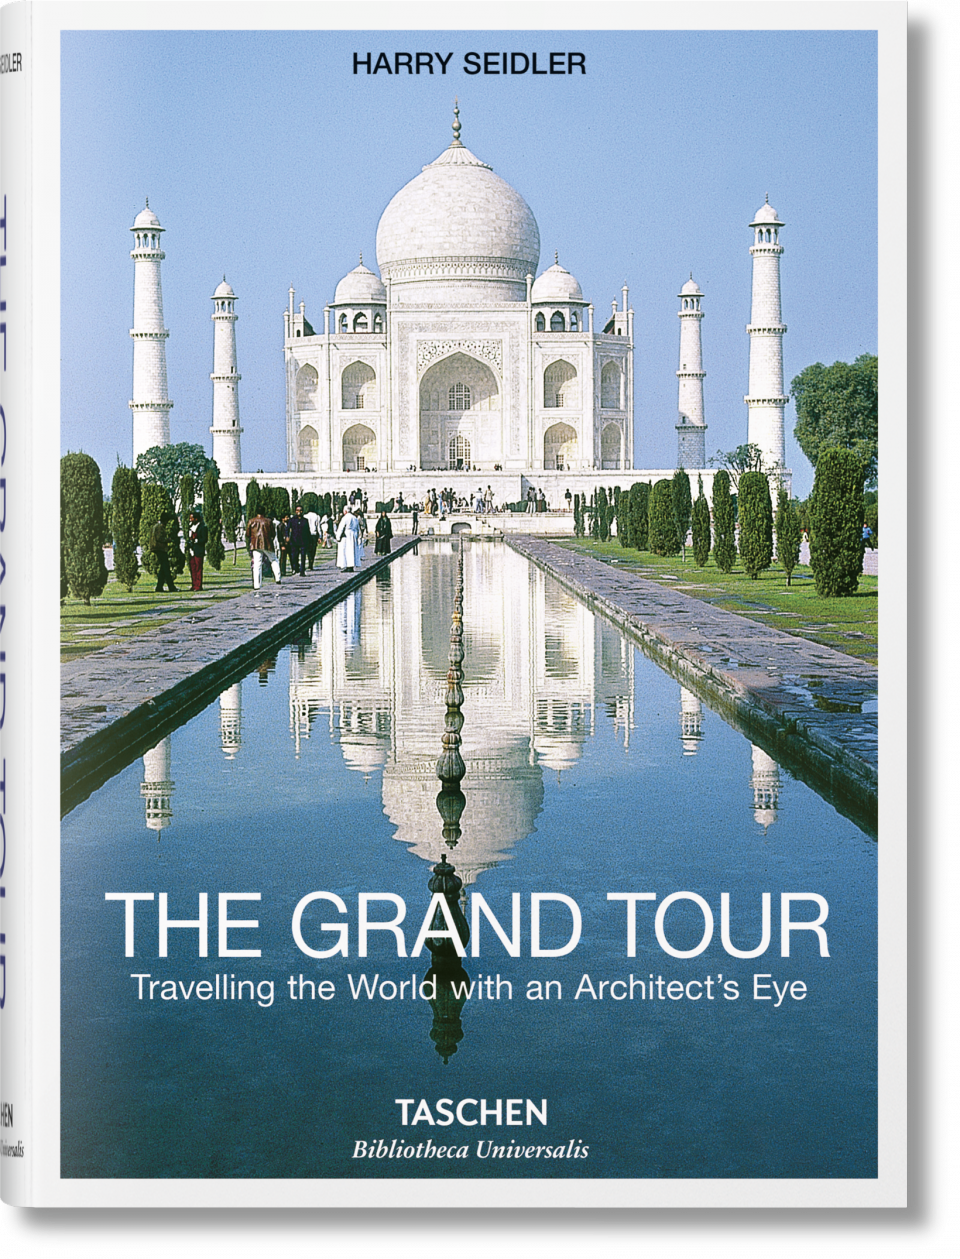 the grand tour travelling the world with an architect s eye bibliotheca universalis taschen. Black Bedroom Furniture Sets. Home Design Ideas